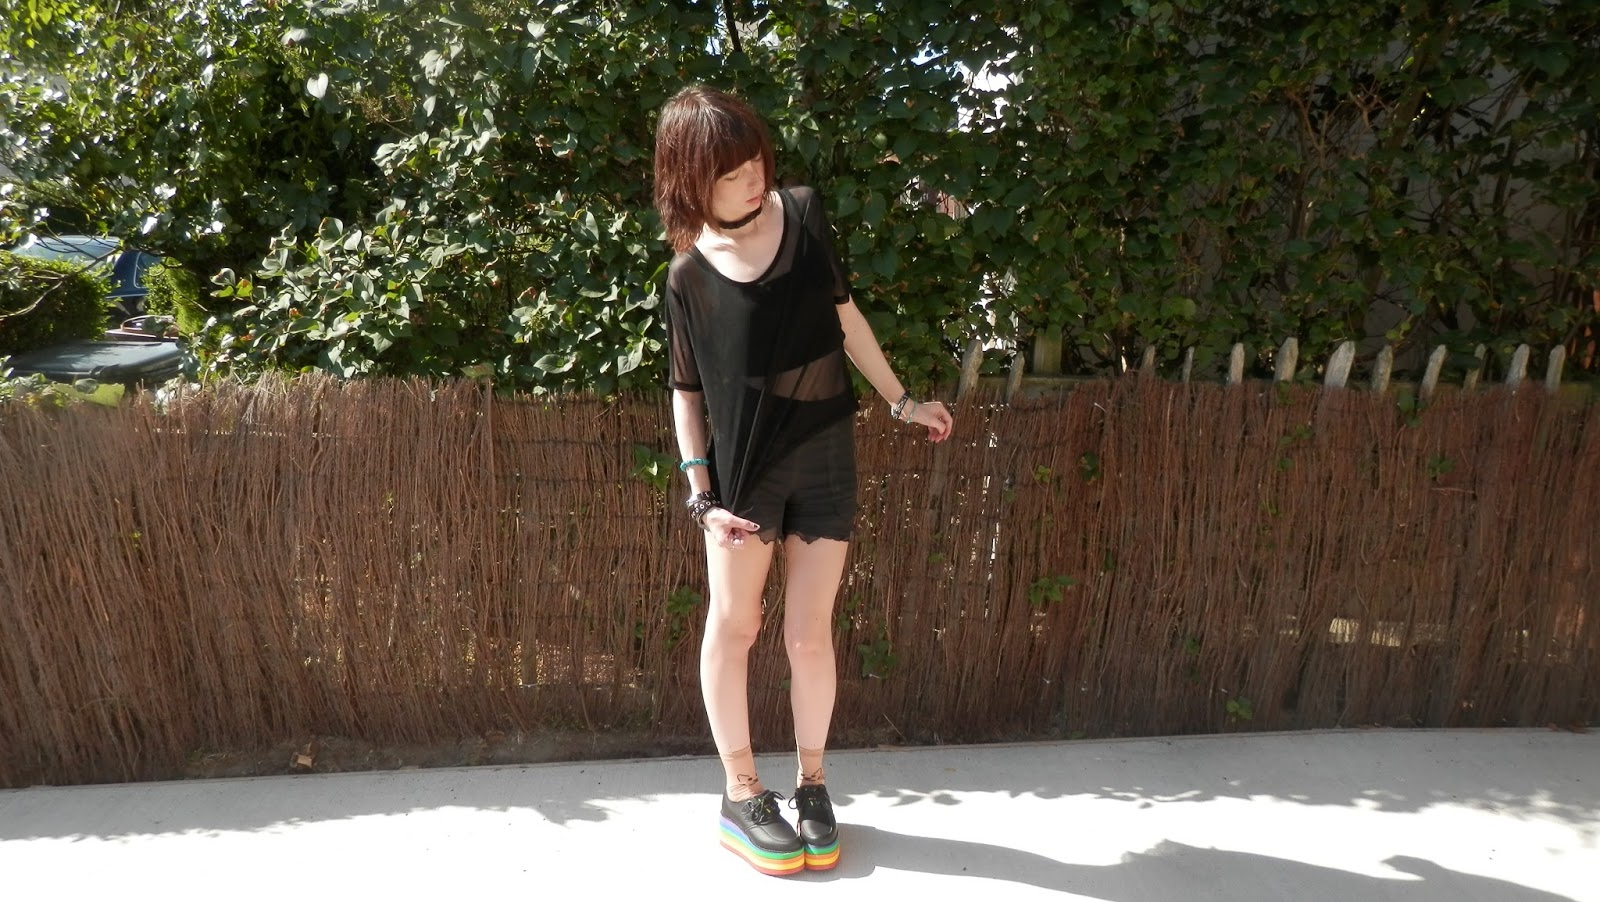 Mesh Top Outfit With Platform Creepers